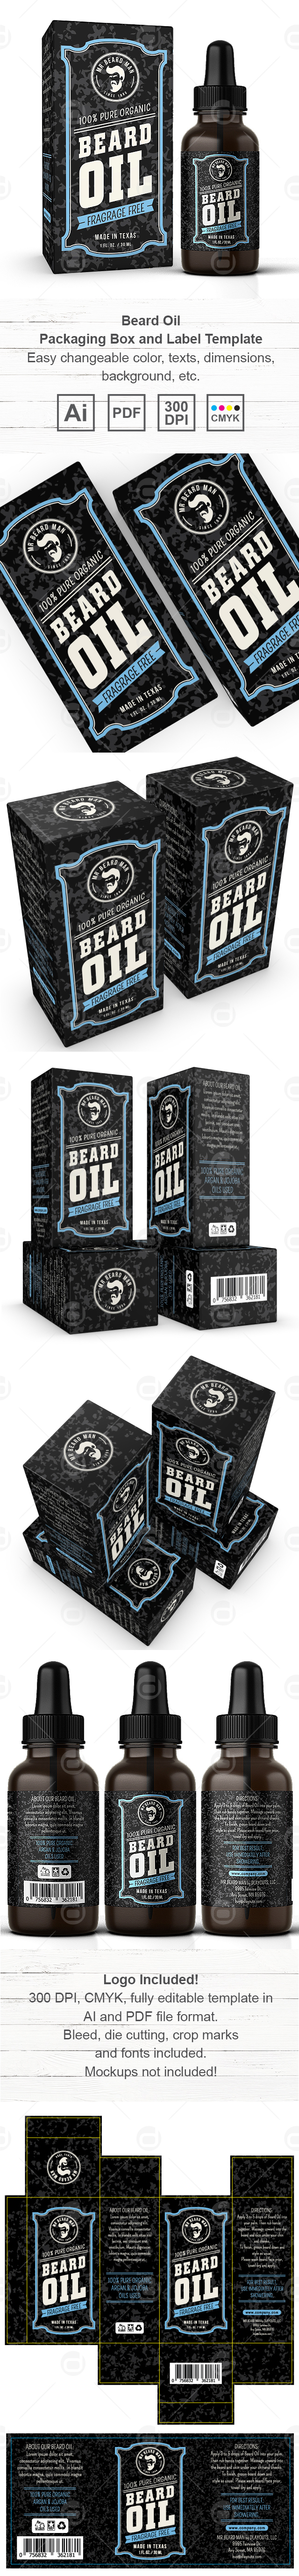 Beard Oil Packa...